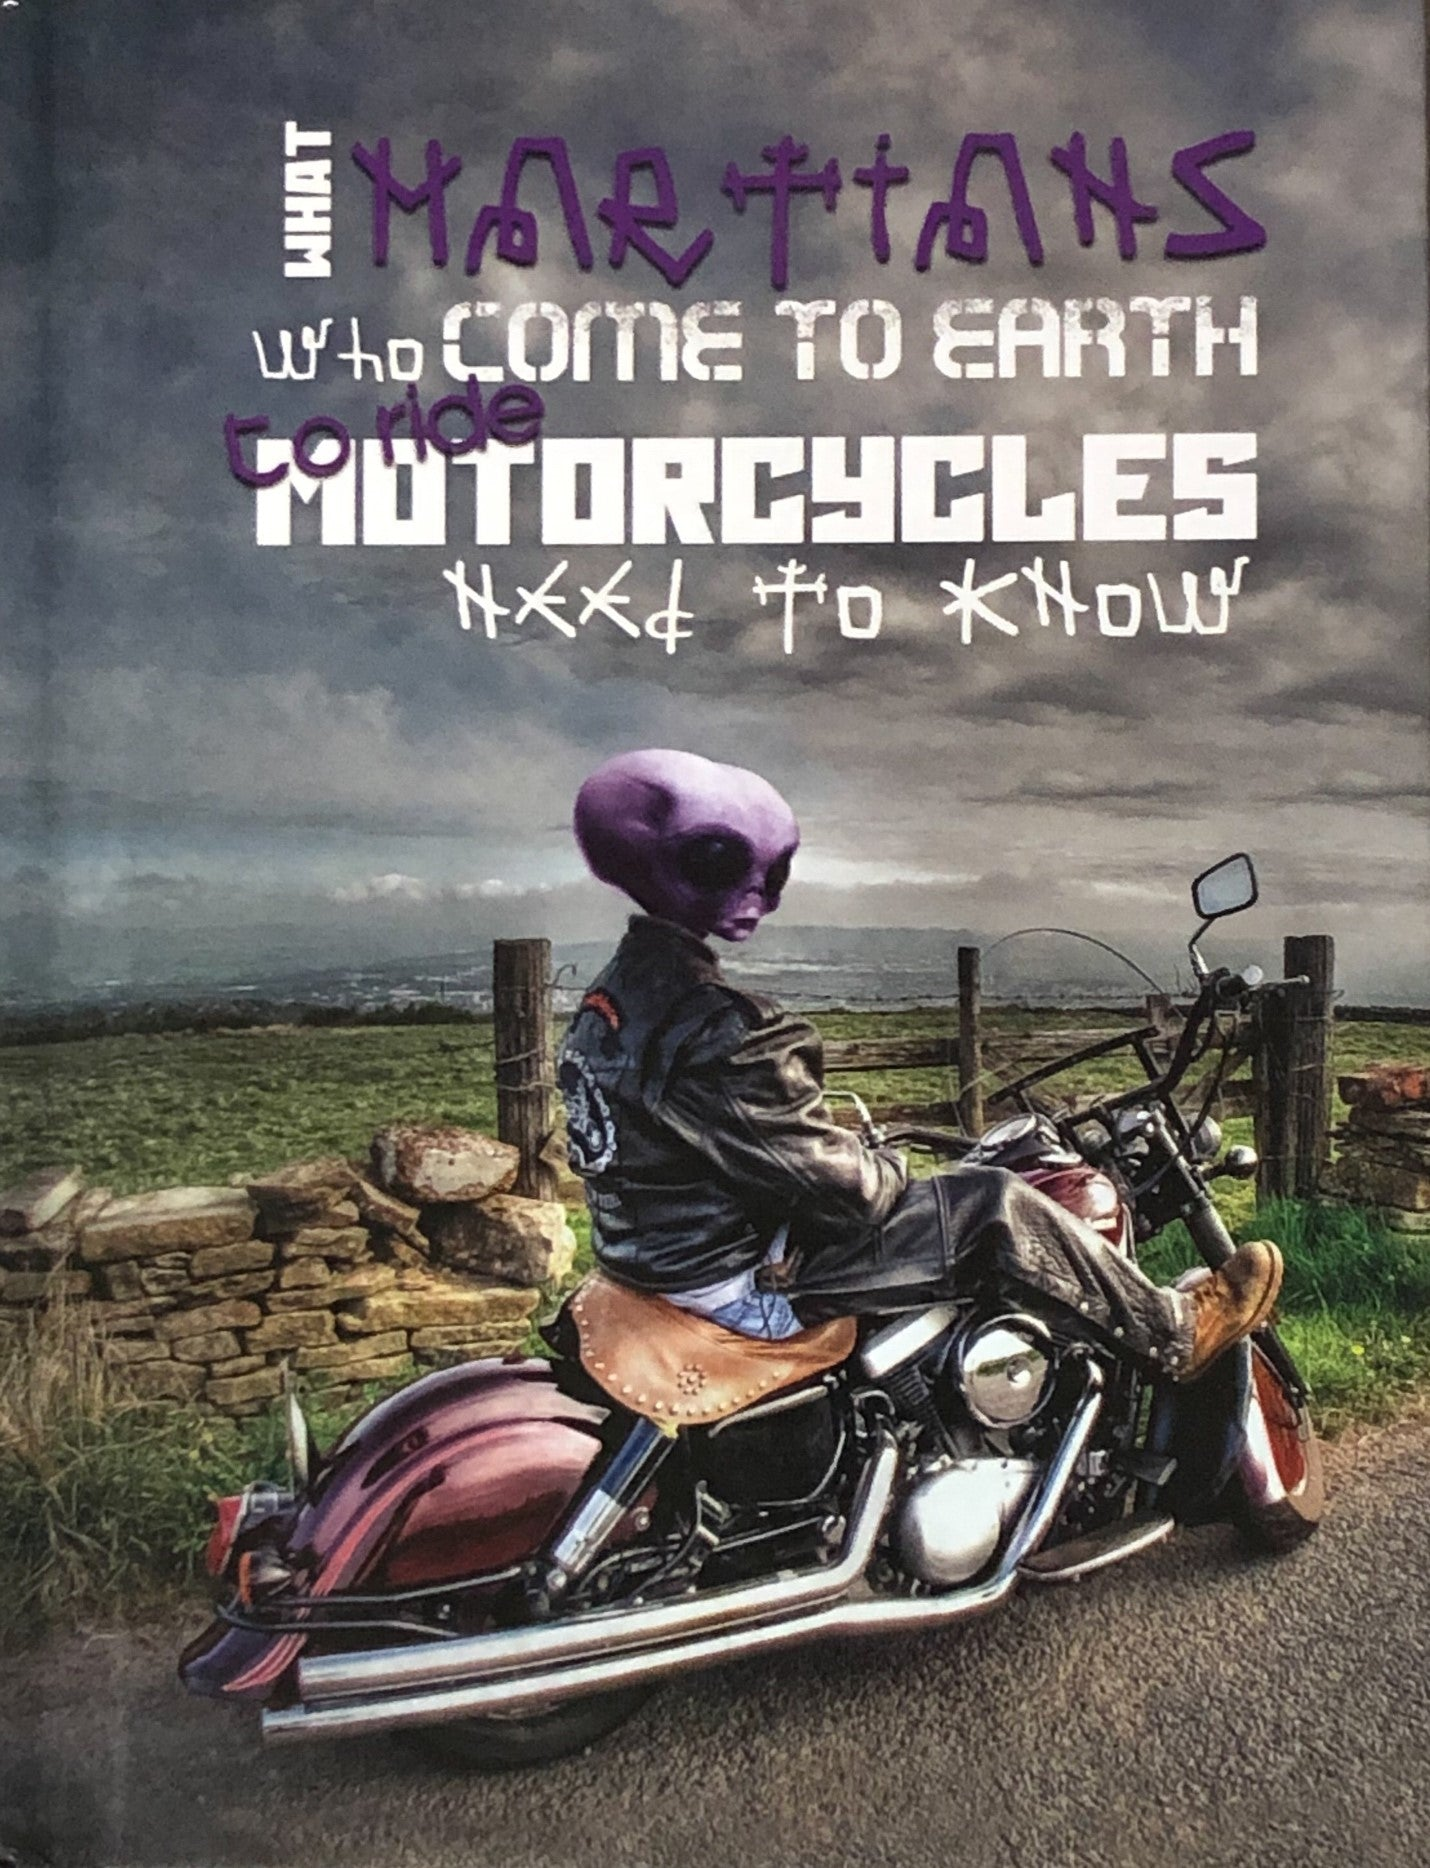 Book, What Martians Who Come To Earth To Ride Motorcycles Need To Know